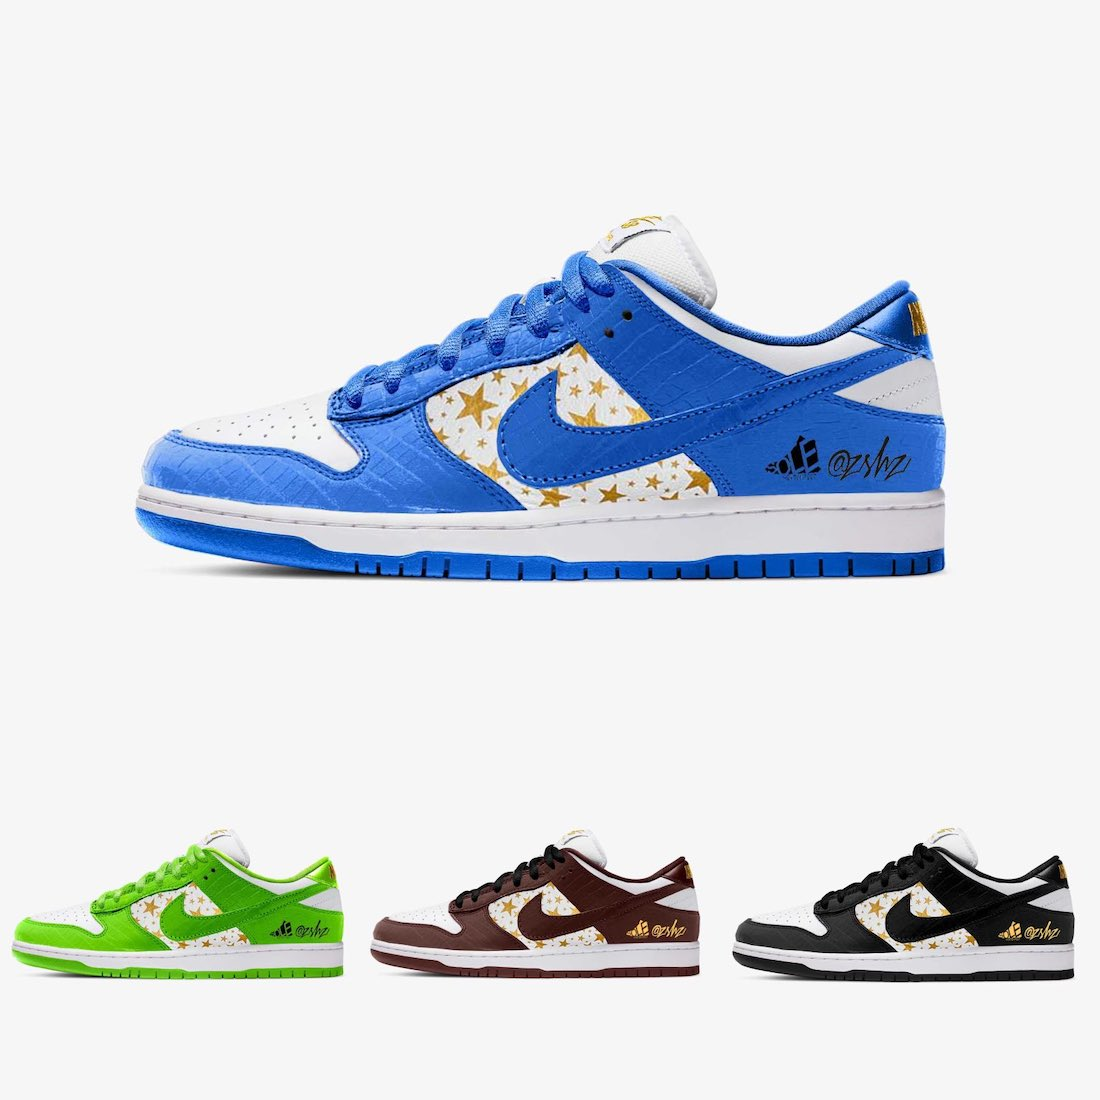 Supreme Nike SB Dunk Low DH3228-100 DH3228-101 DH3228-102 DH3228-103 Release Date